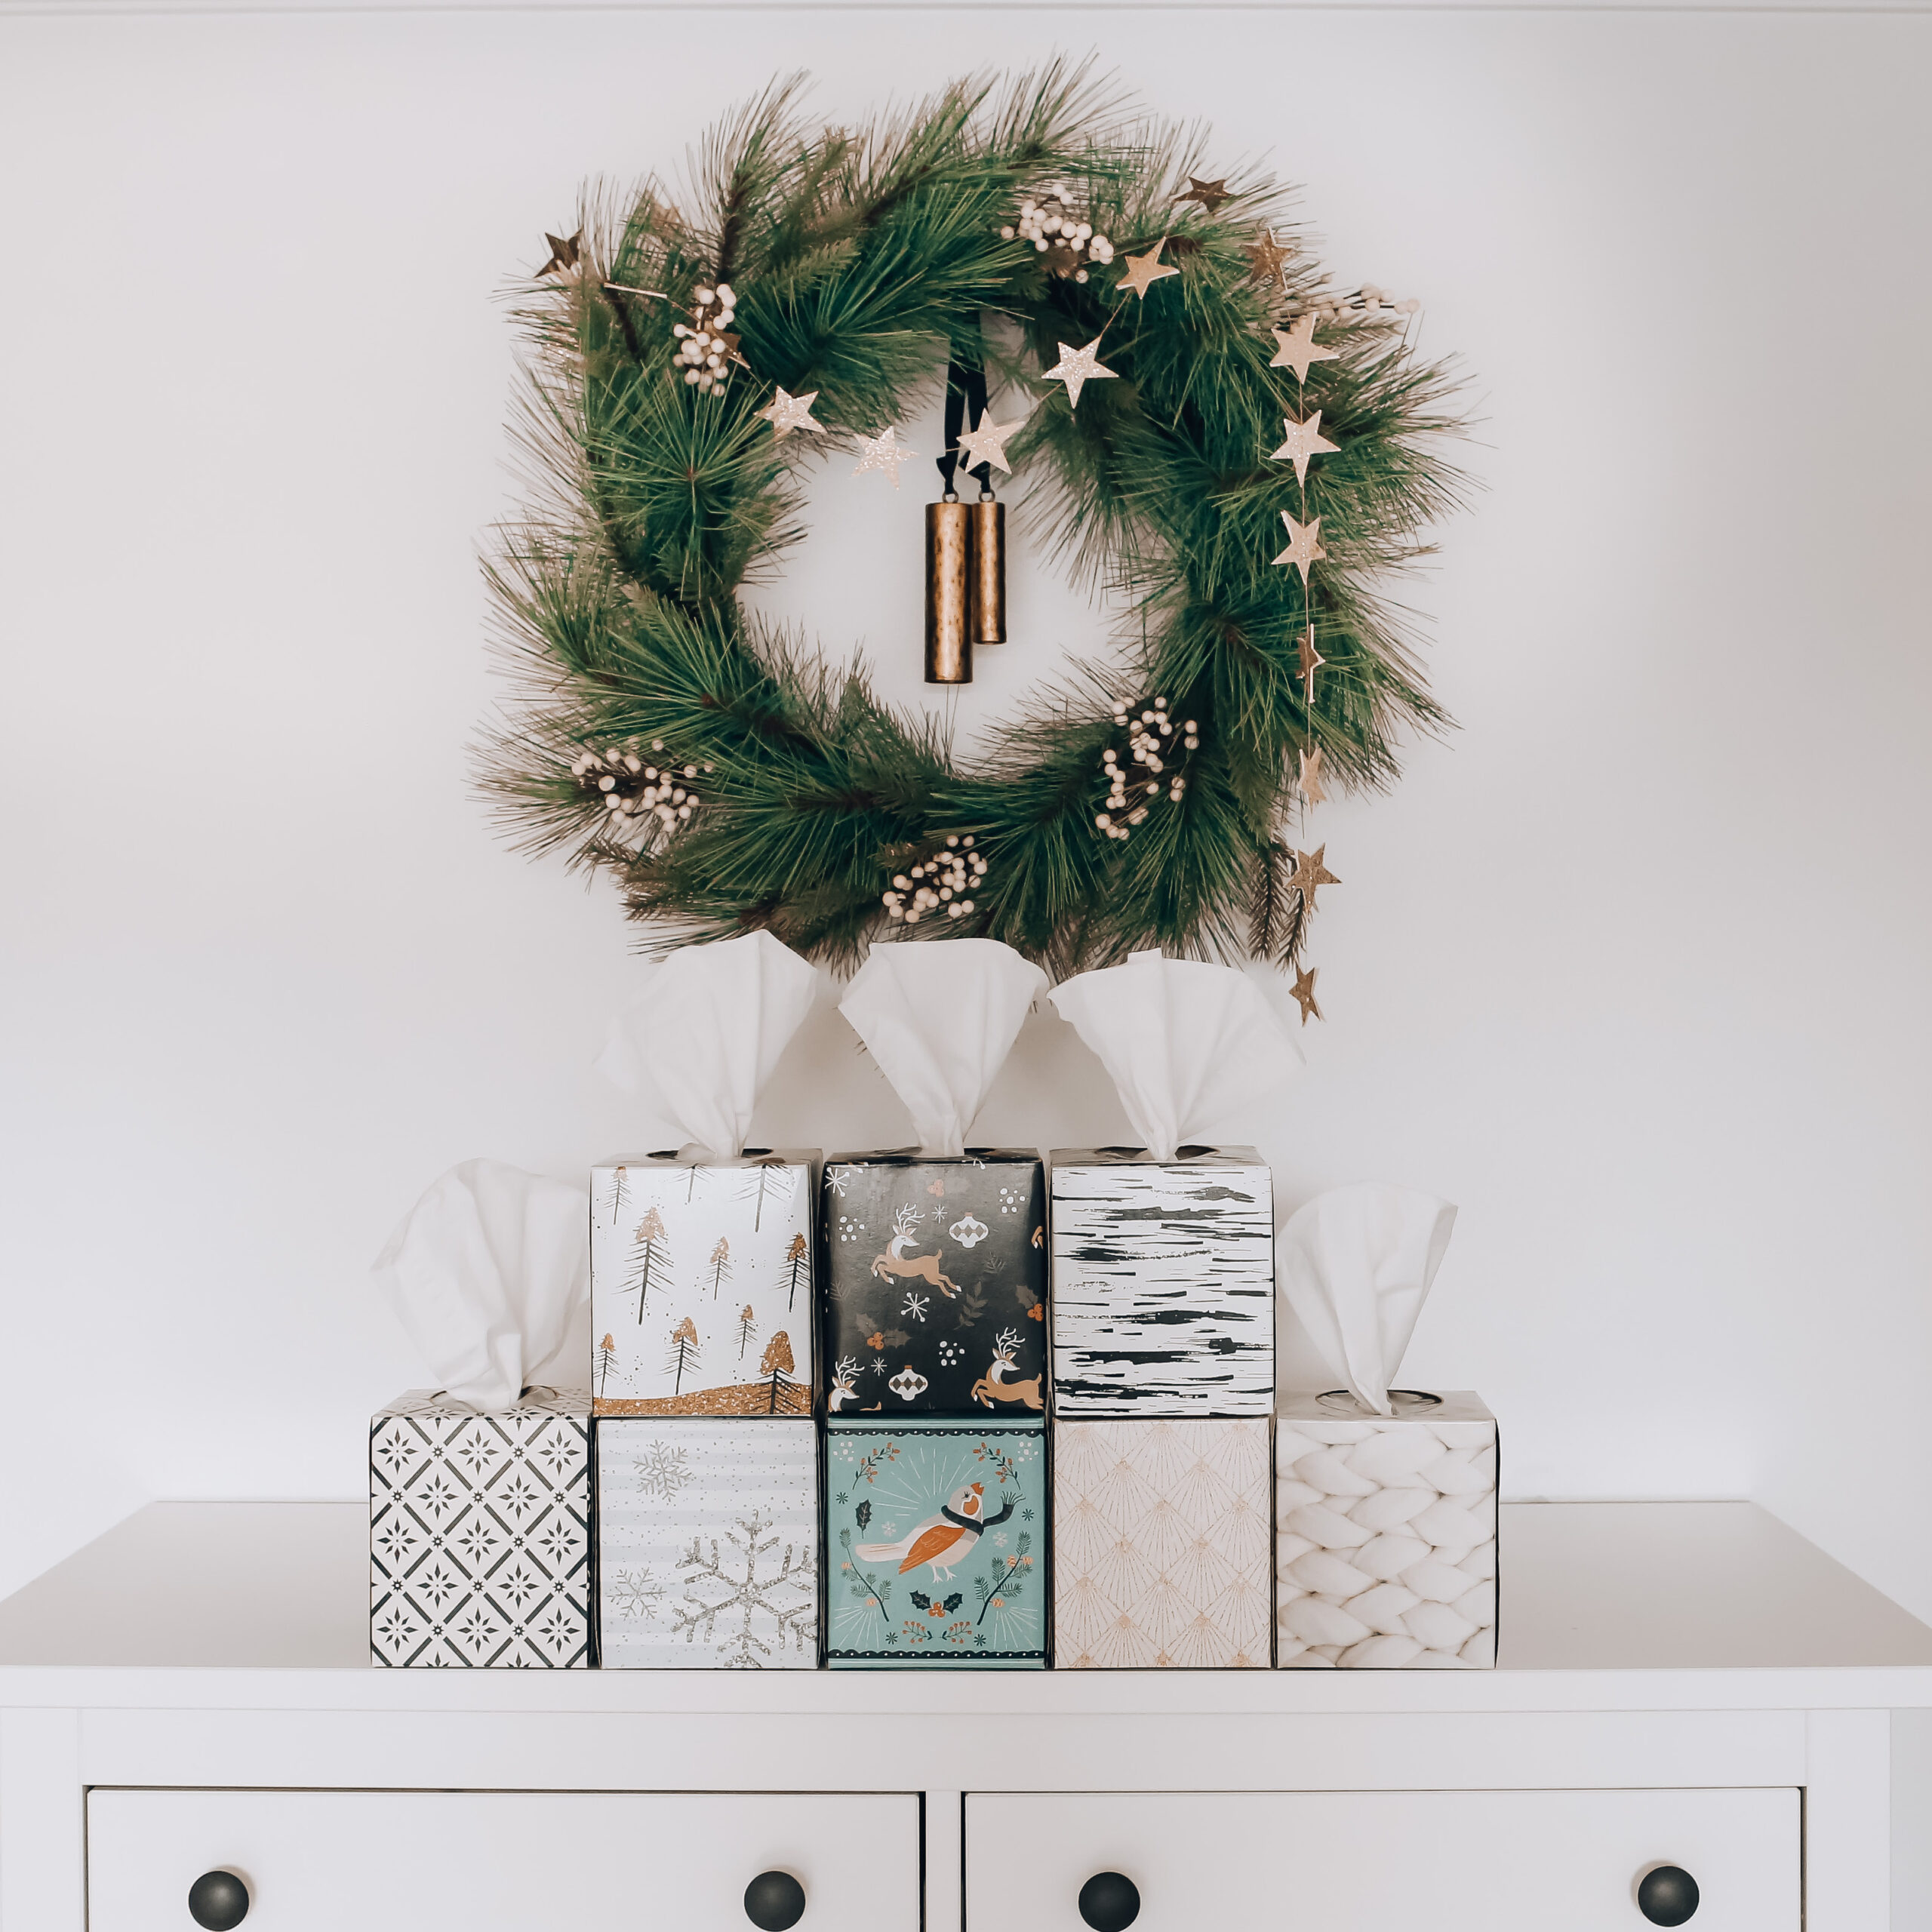 Scottie's Holiday Tissue collection, decorating for the holidays